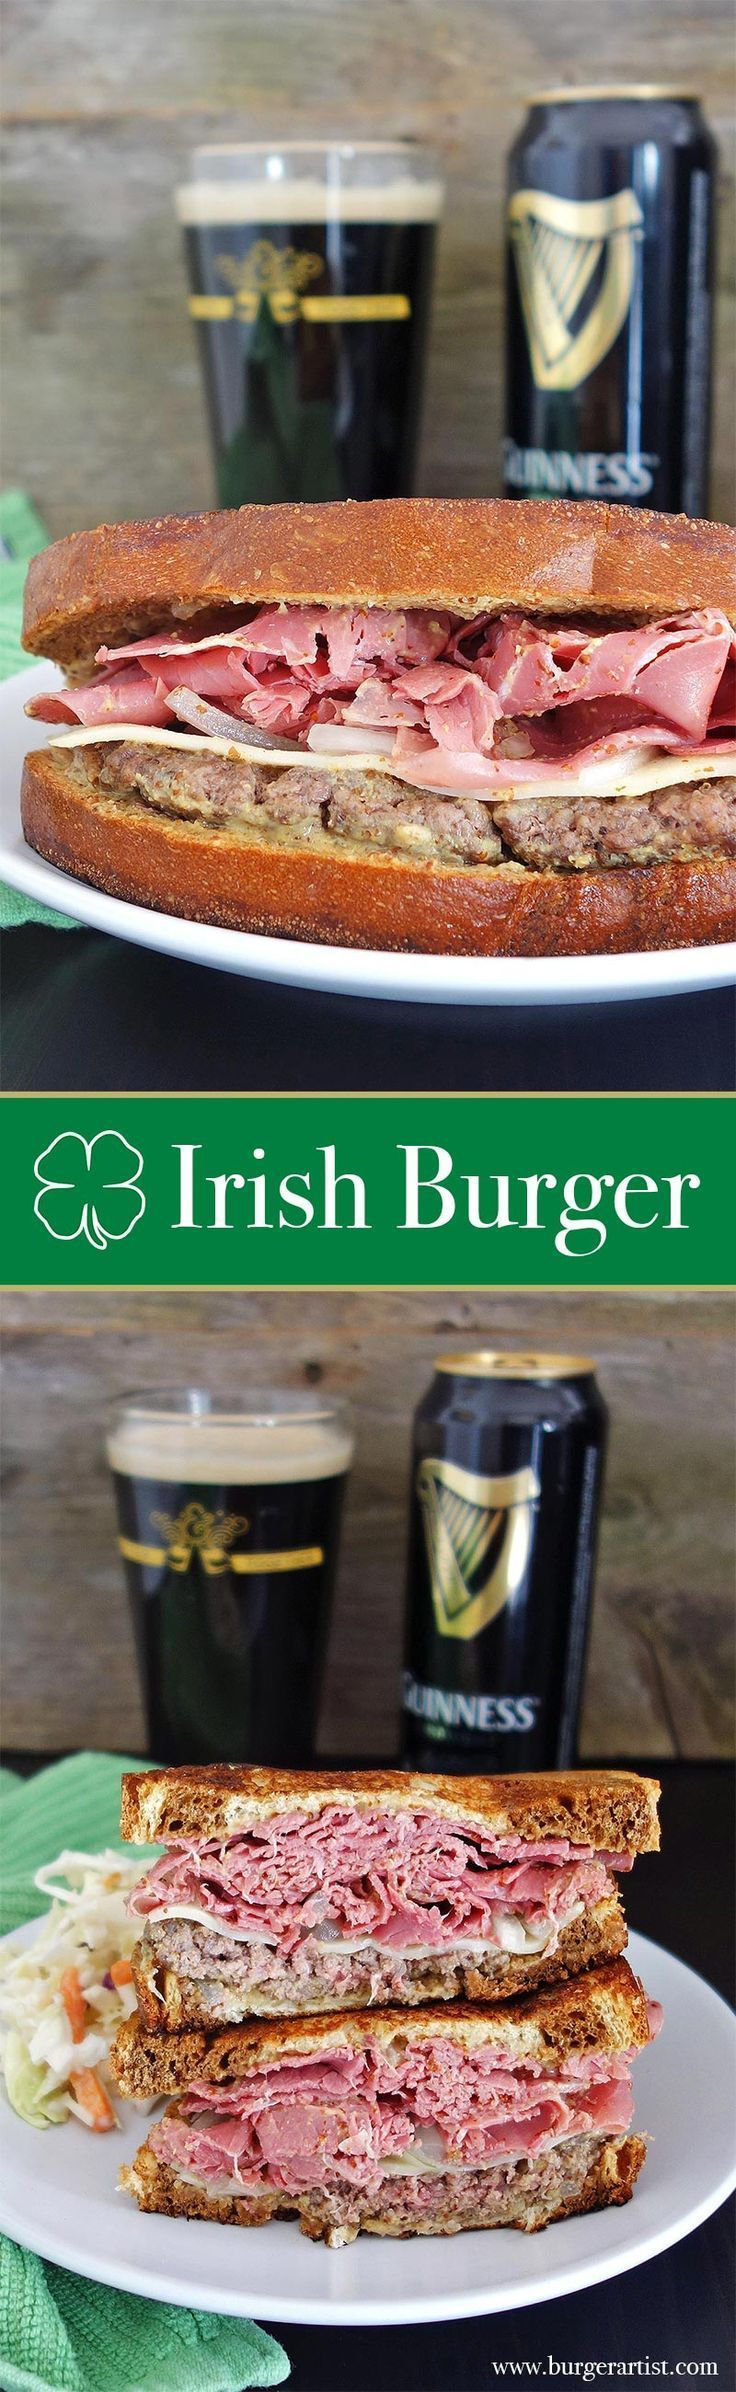 Get lucky with the Irish Burger. Topped with Corned Beef, Guinness mustard, Swiss cheese, and onions. Perfect for St. Patrick's Day!